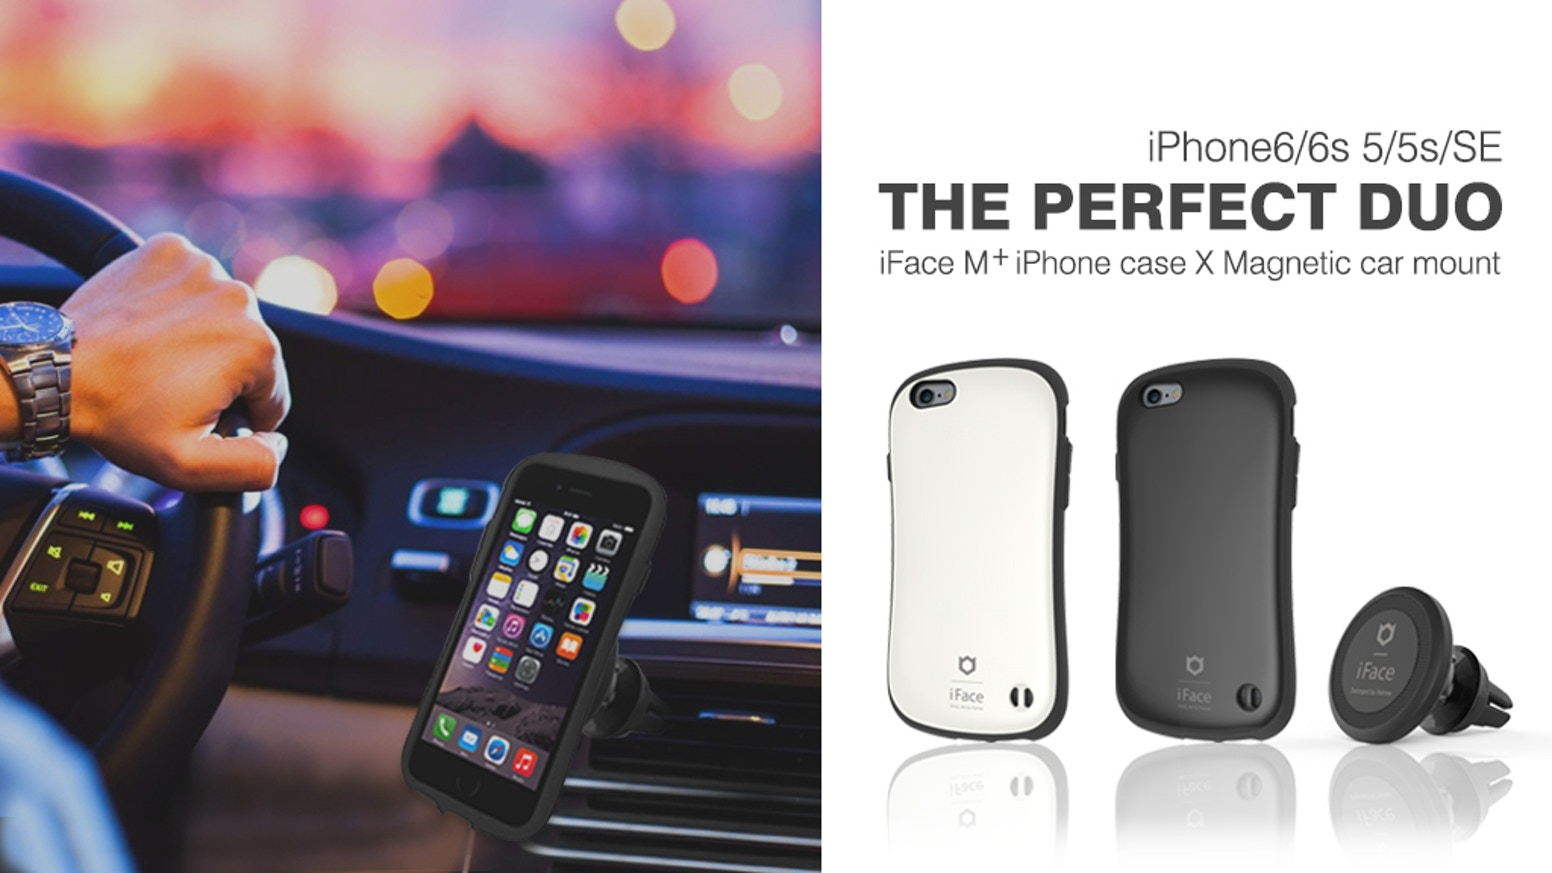 The perfect duo iface m iphone case magnetic car mount